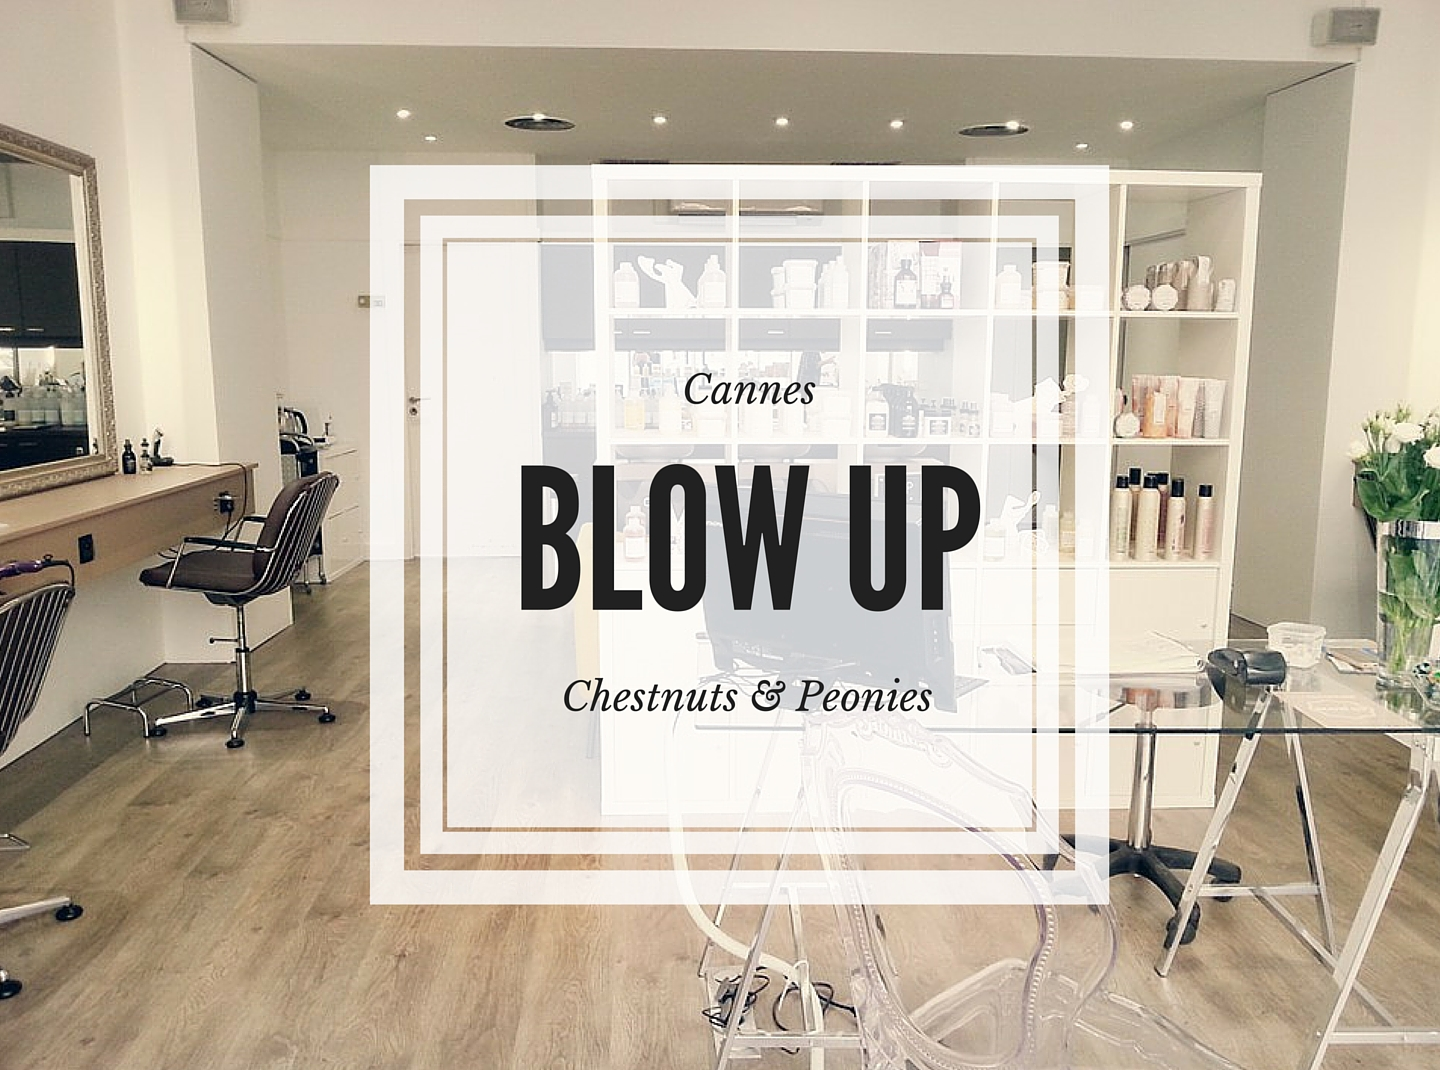 Salon de coiffure Blow Up Cannes